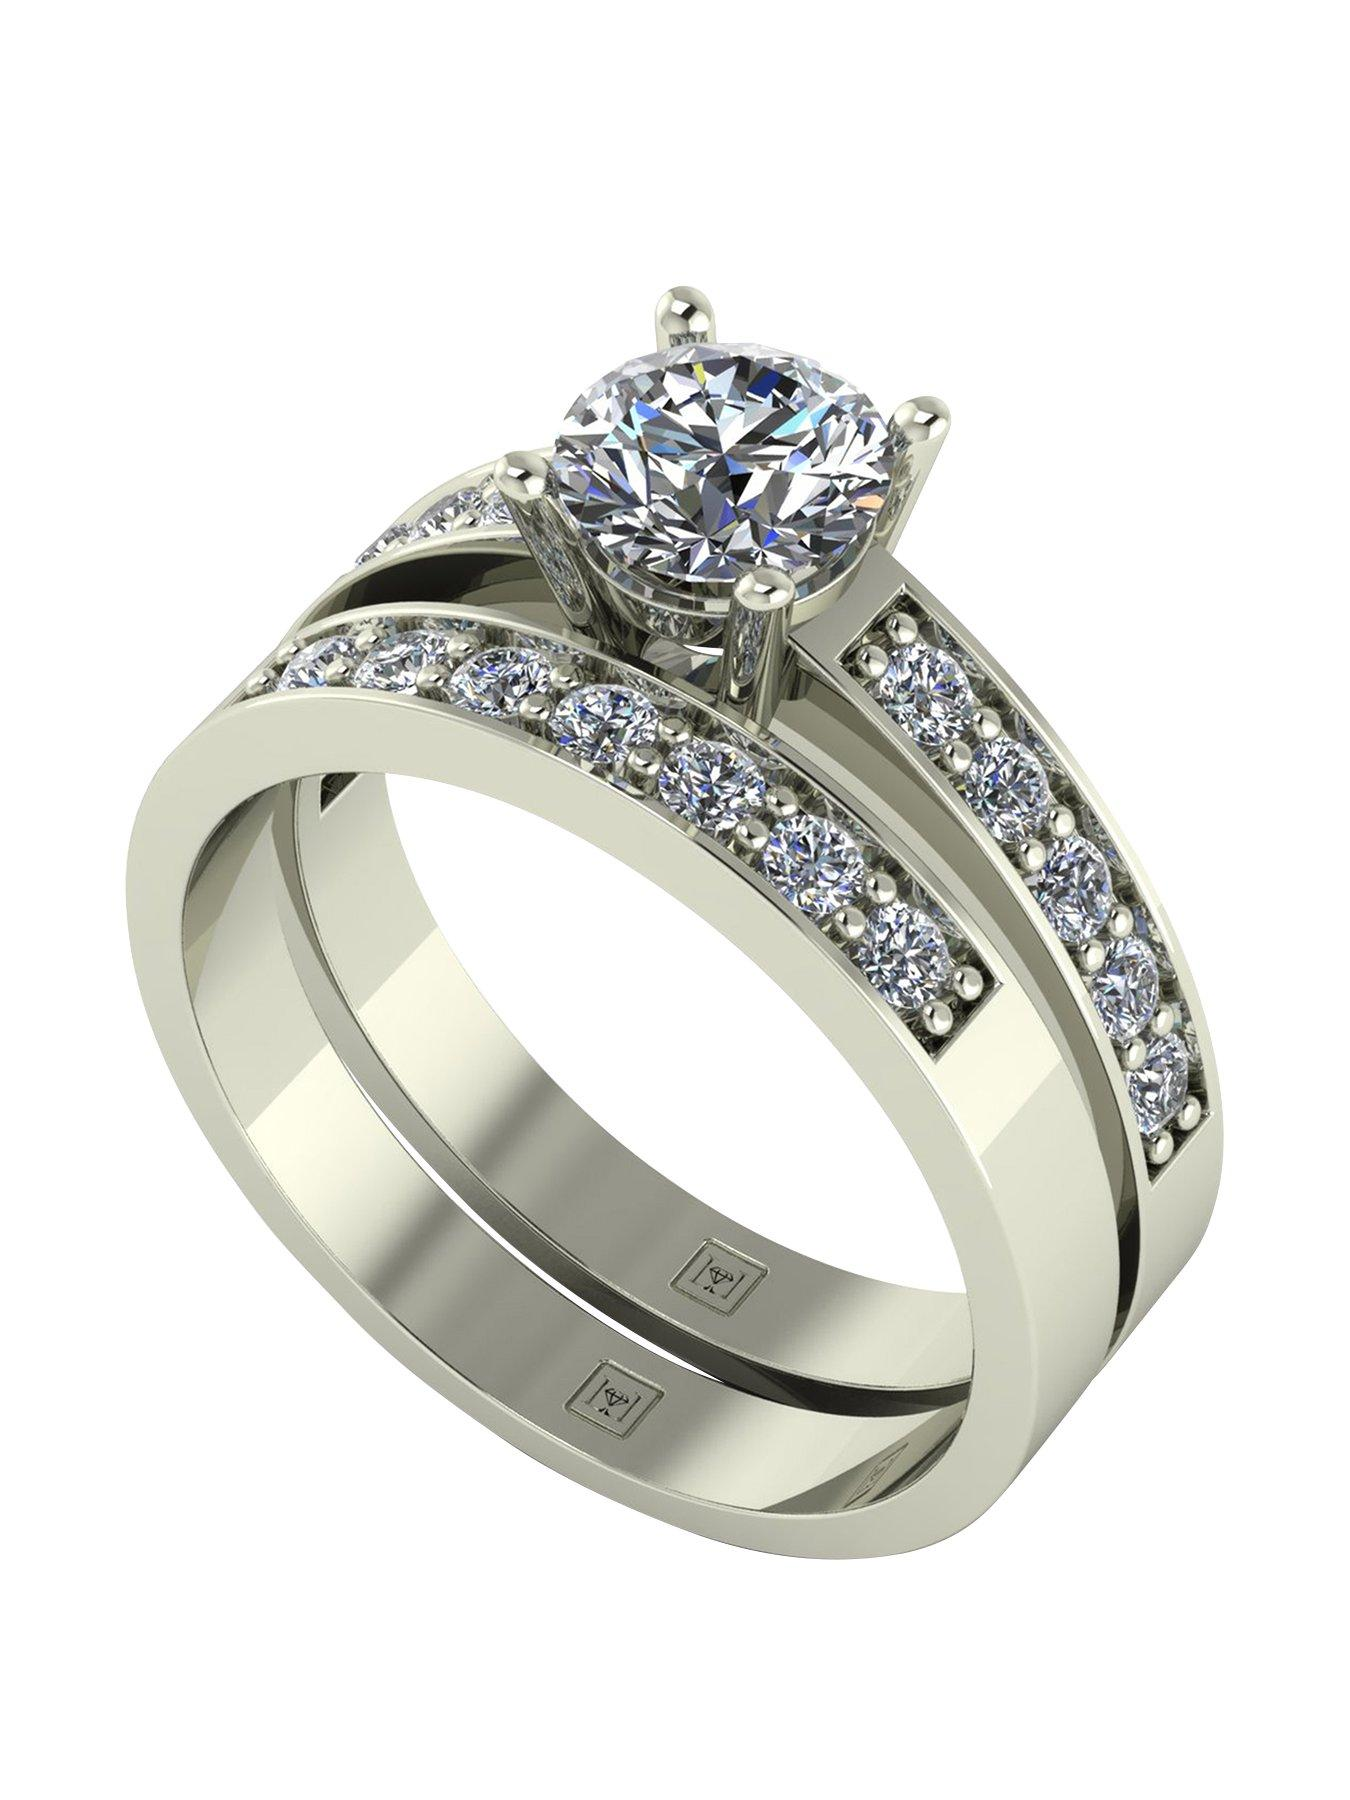 Details about  /1.50ct Round Shape Near White Moissanite In 925 Sterling Silver Solitaire Ring